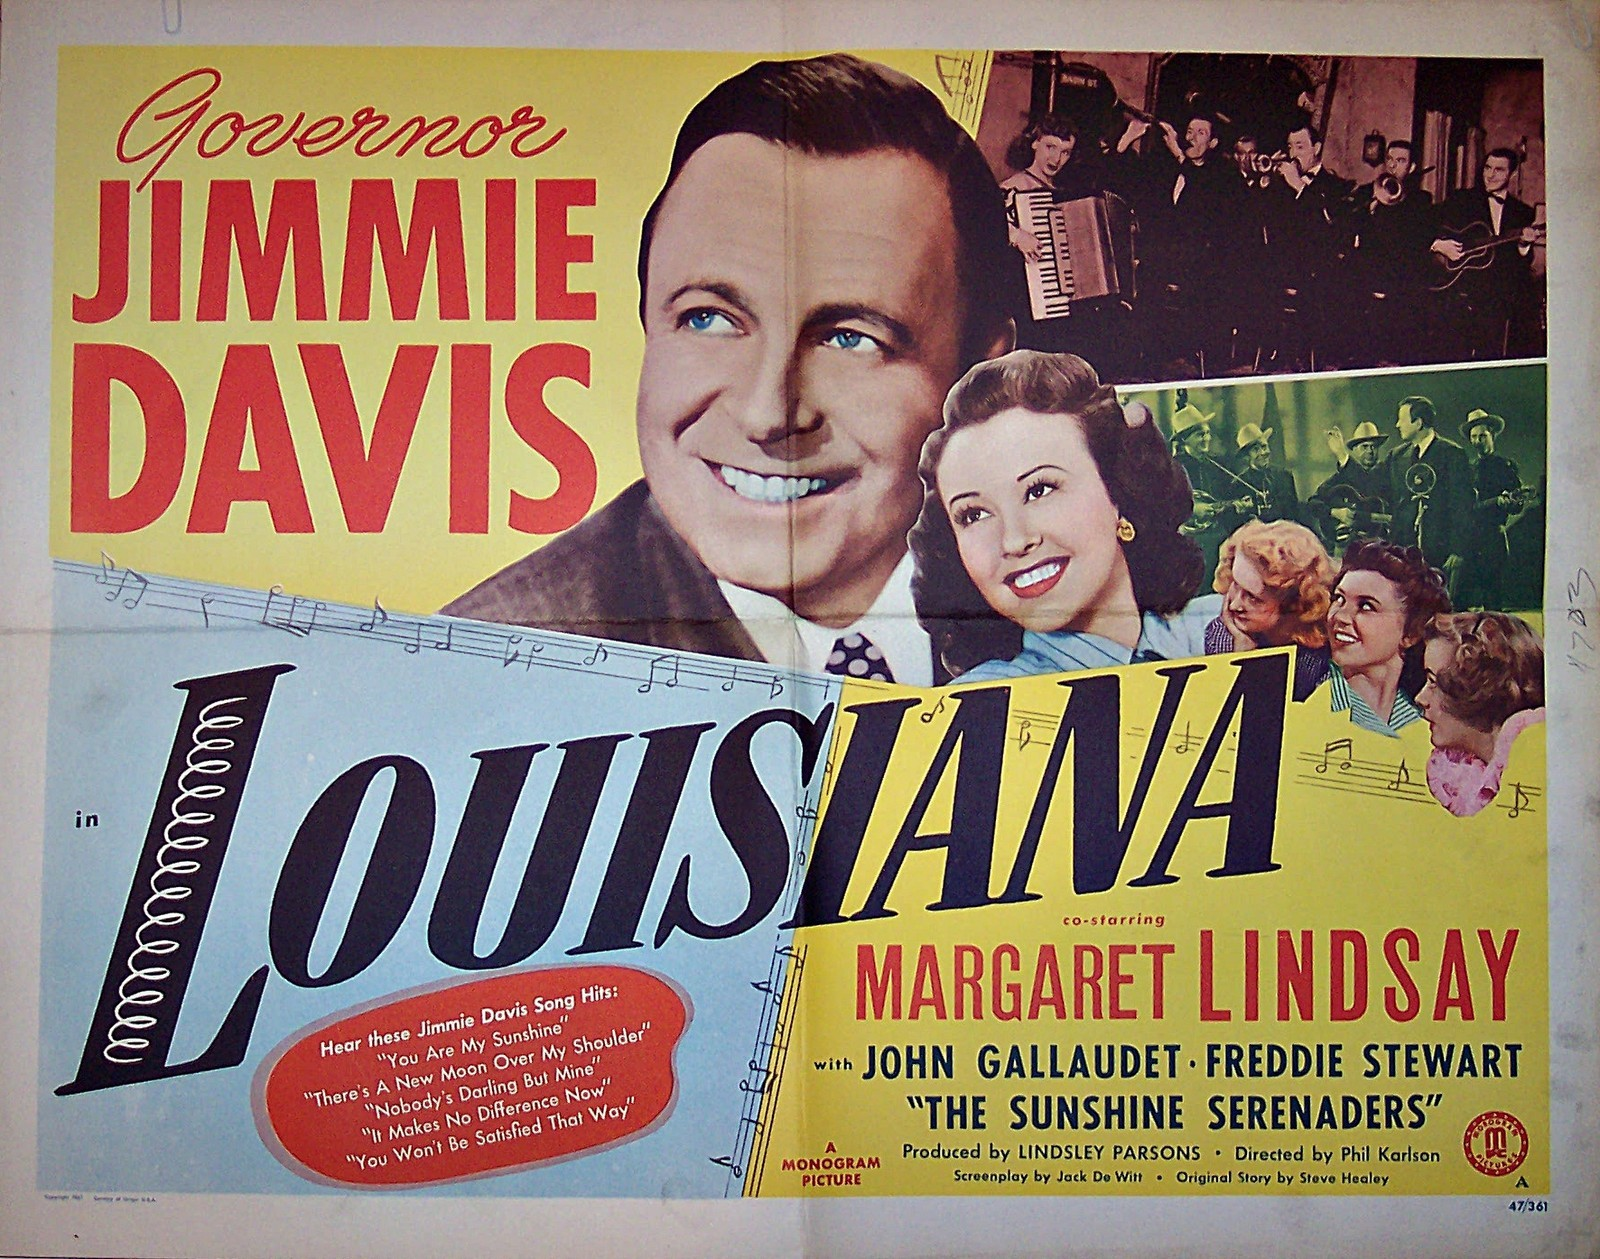 Pictured is a US lobby card for the 1947 Phil Karlson film Louisiana starring Jimmie Davis.